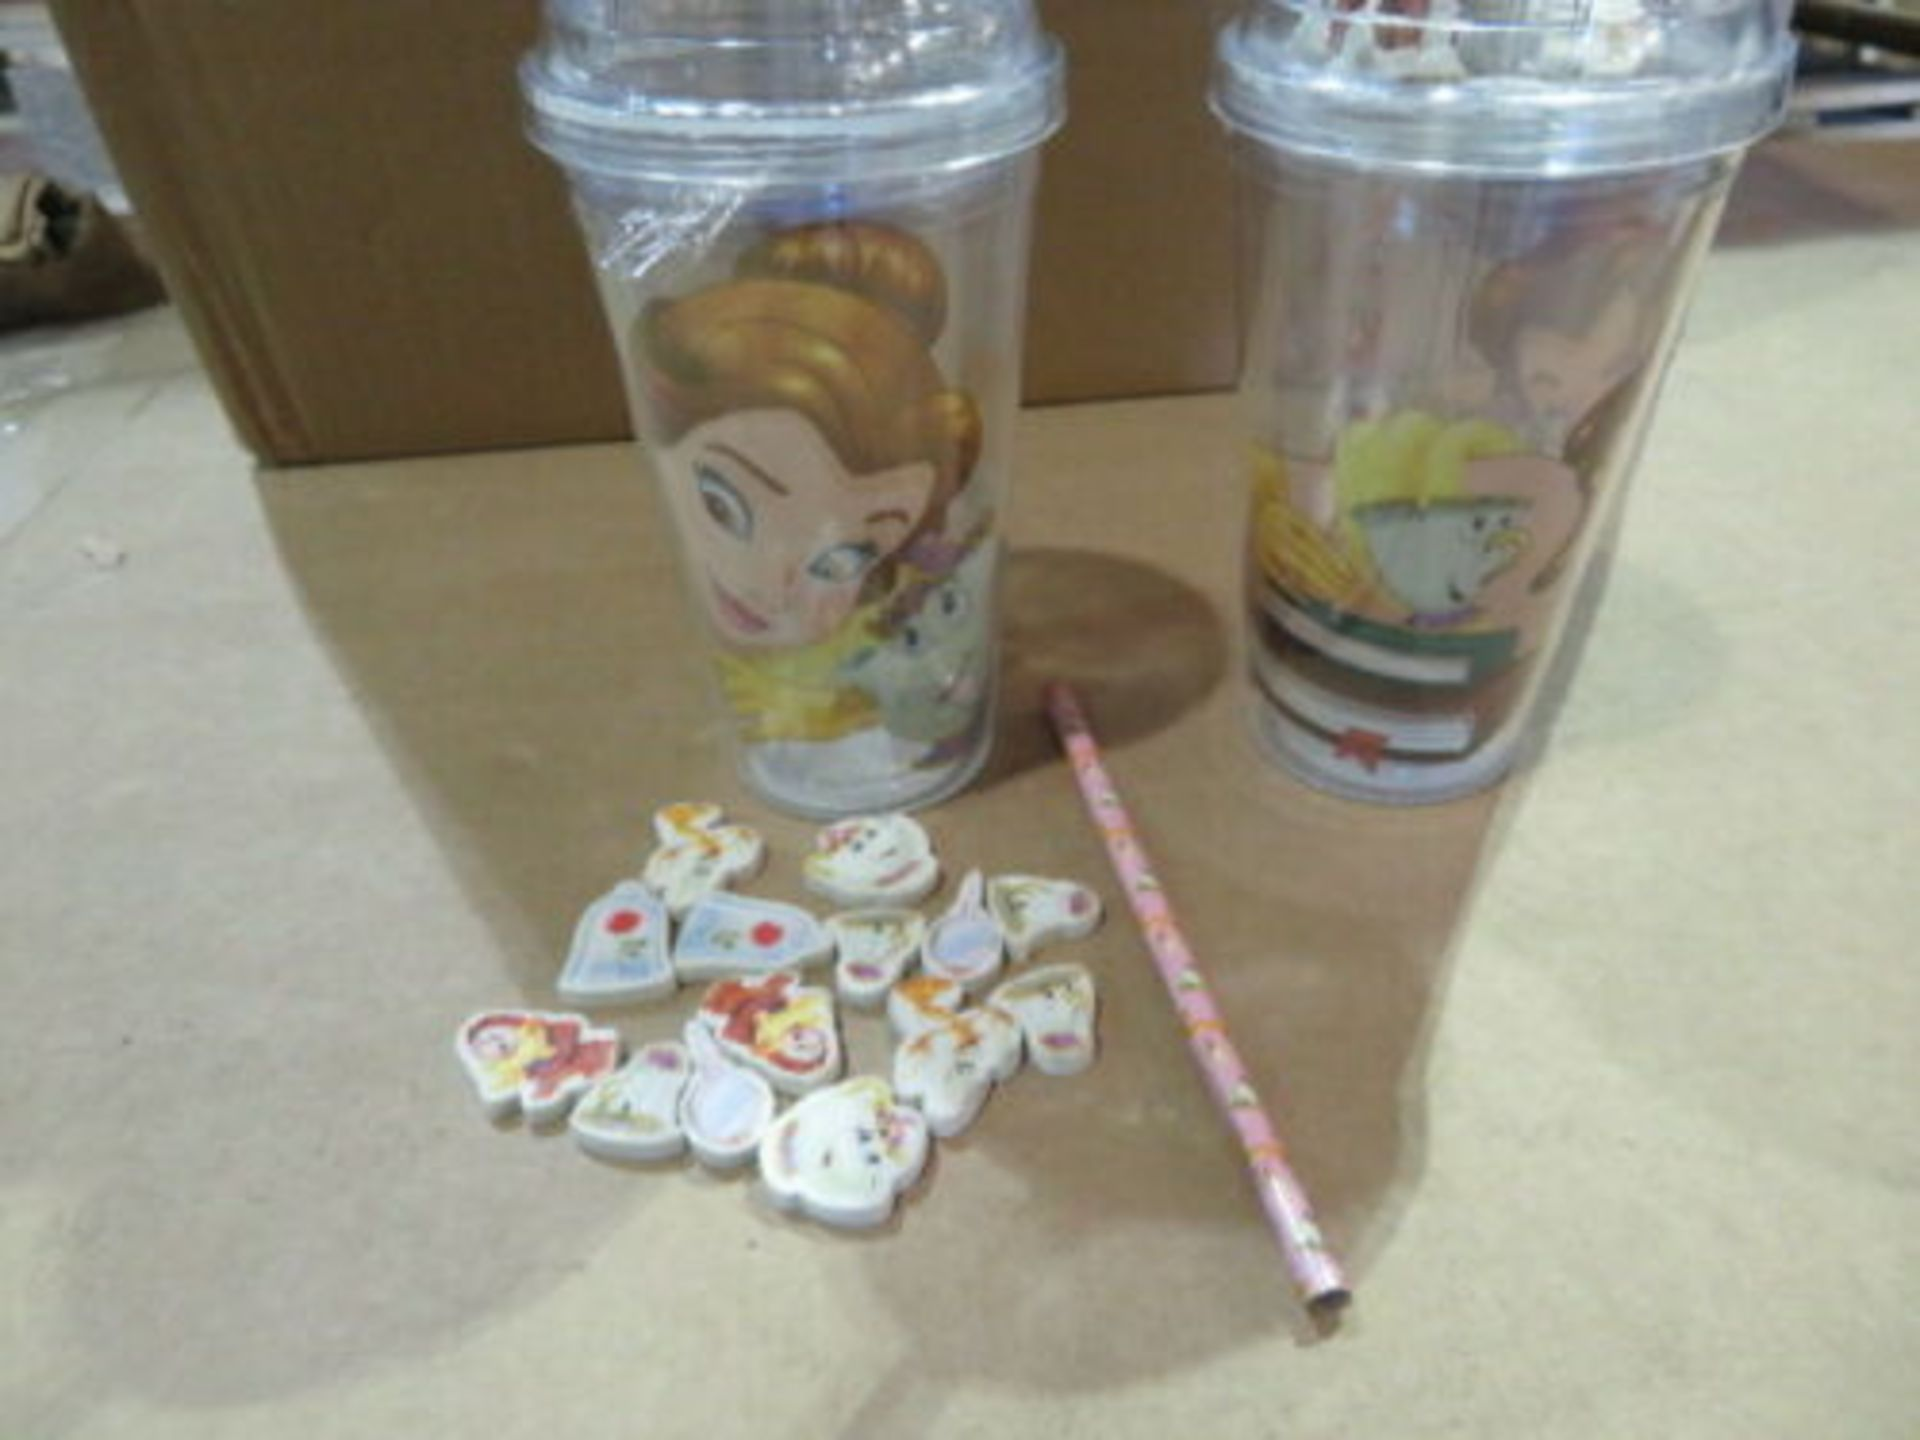 Lot 325 - WHOLESALE JOB LOT 24 X NEW DISNEY BEAUTY AND THE BEAST CUP WITH ERASERS & PENCIL. WHOLESALE JOB...